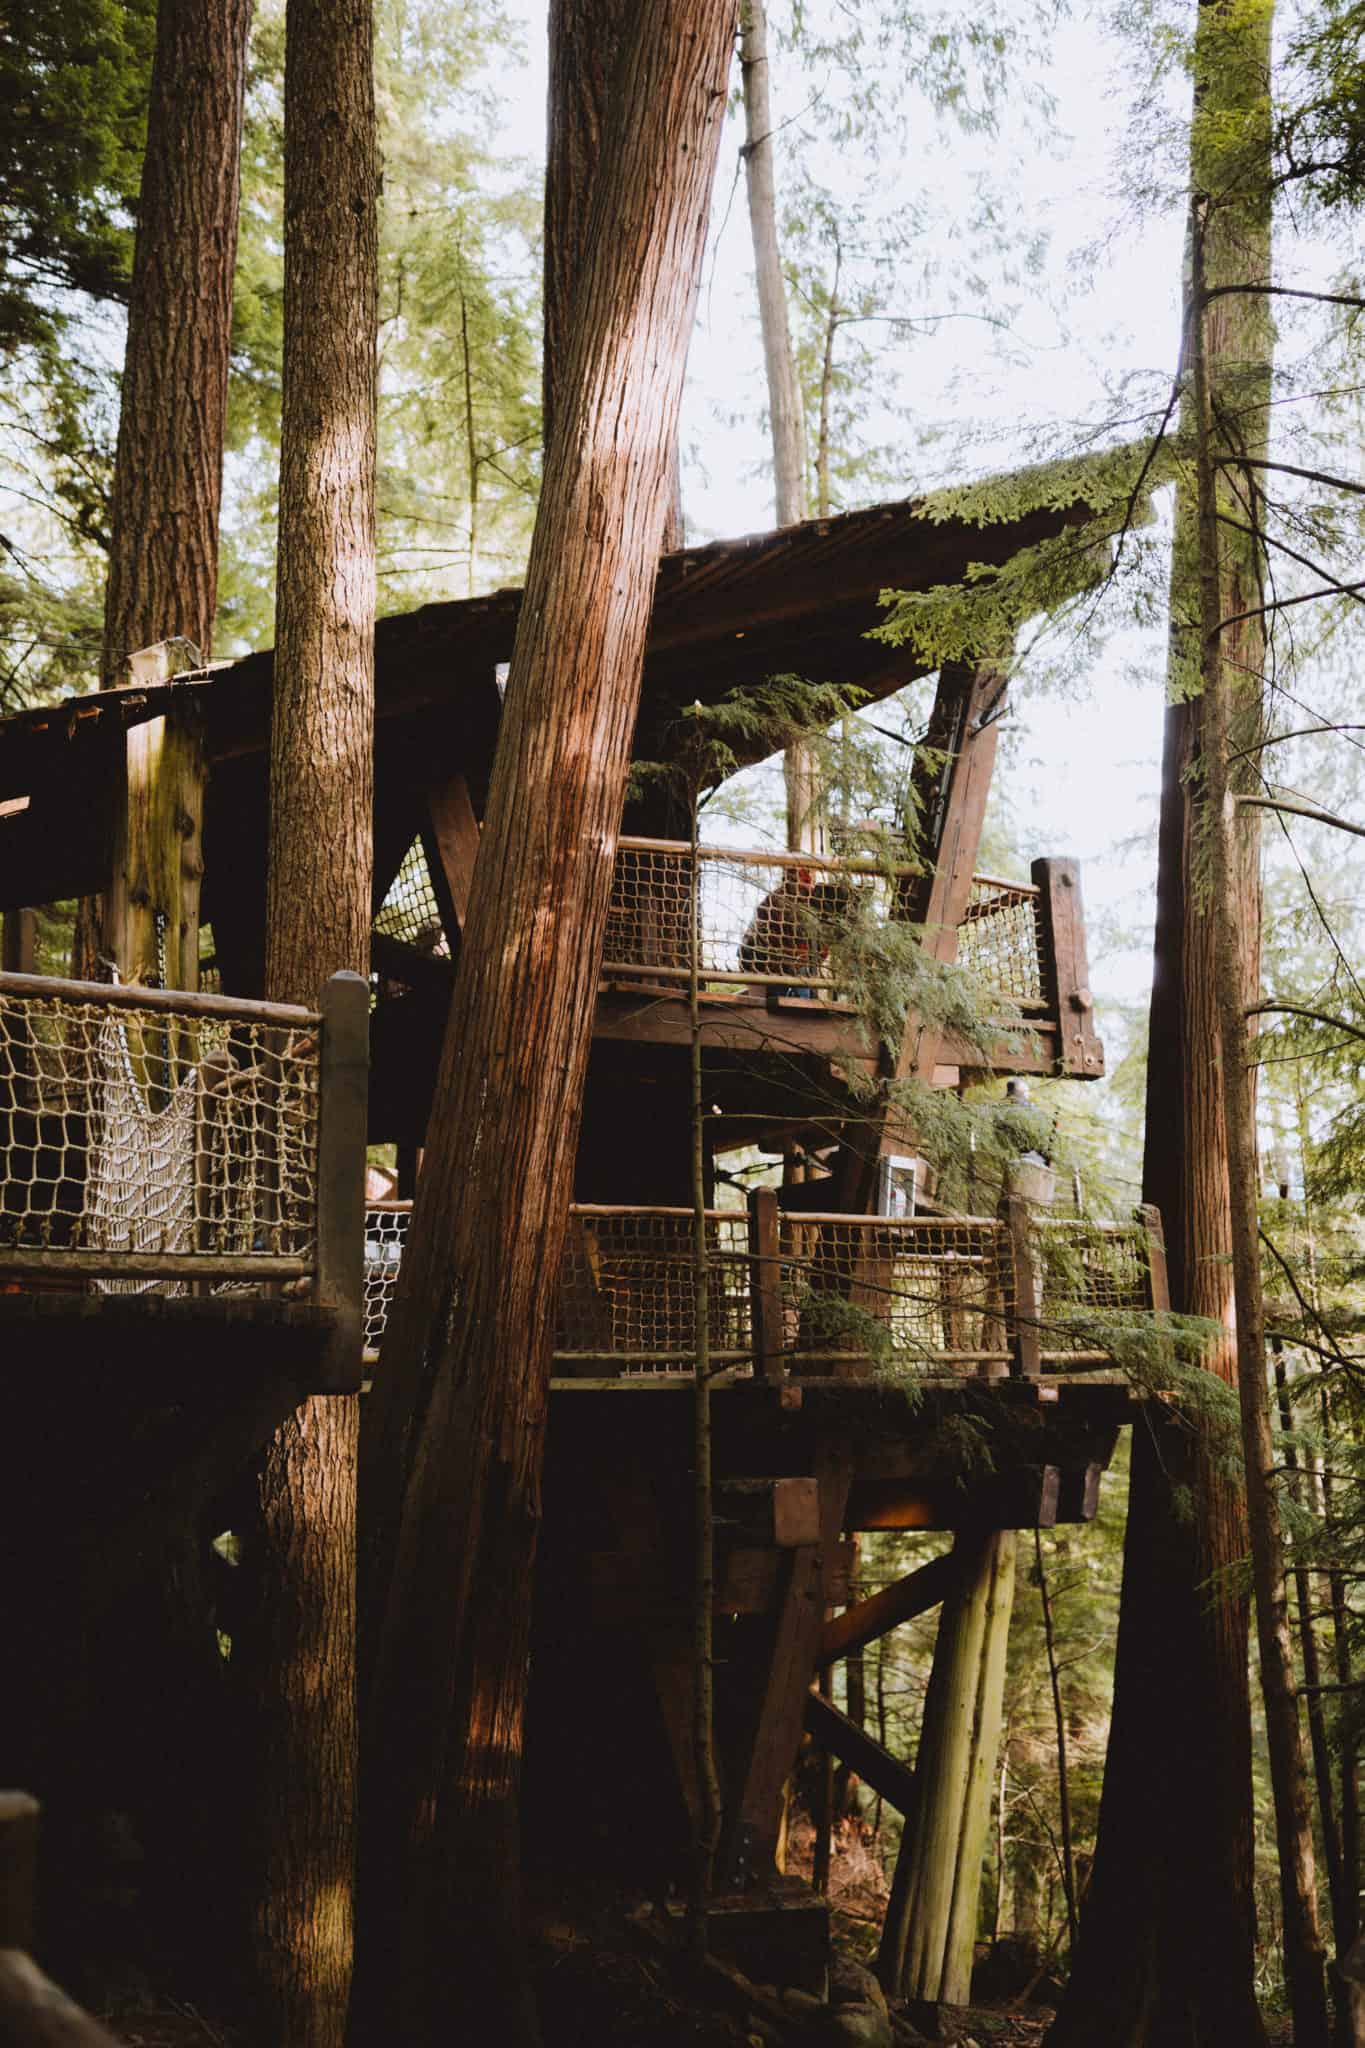 Tree House at Capilano Suspension Bridge Park